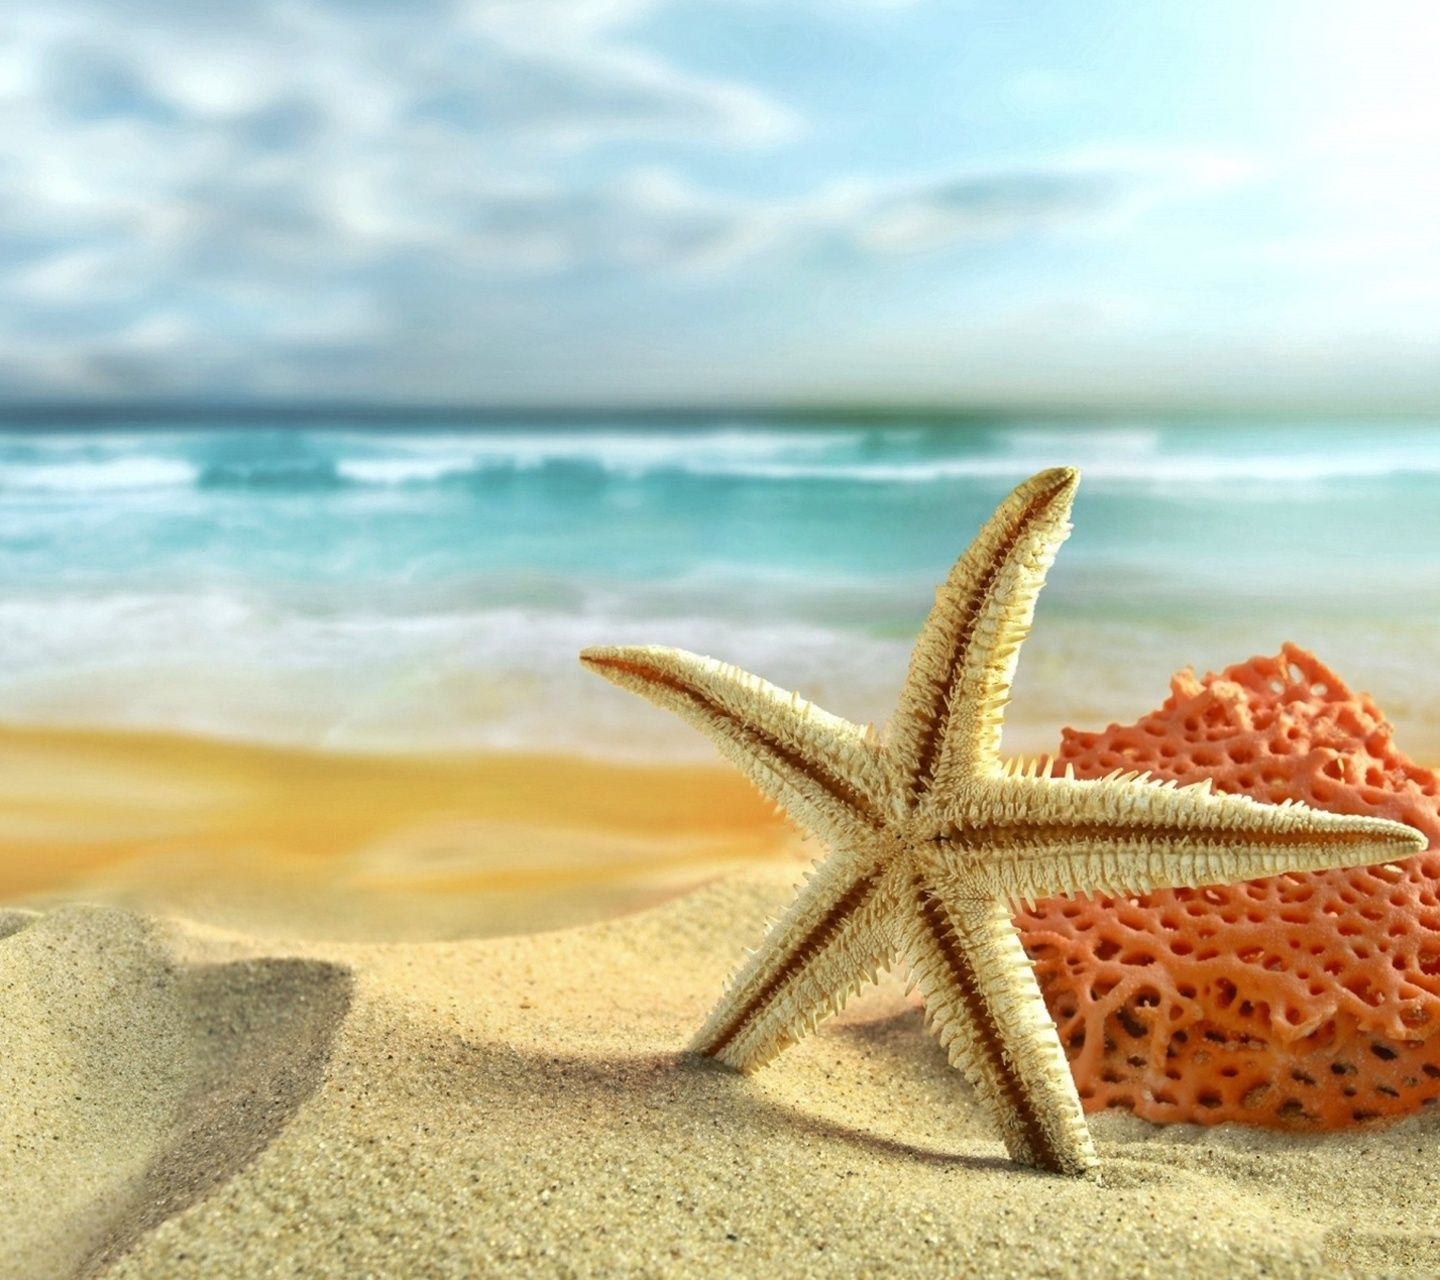 Beach Hd Wallpaper Android Places Visit Pinterest